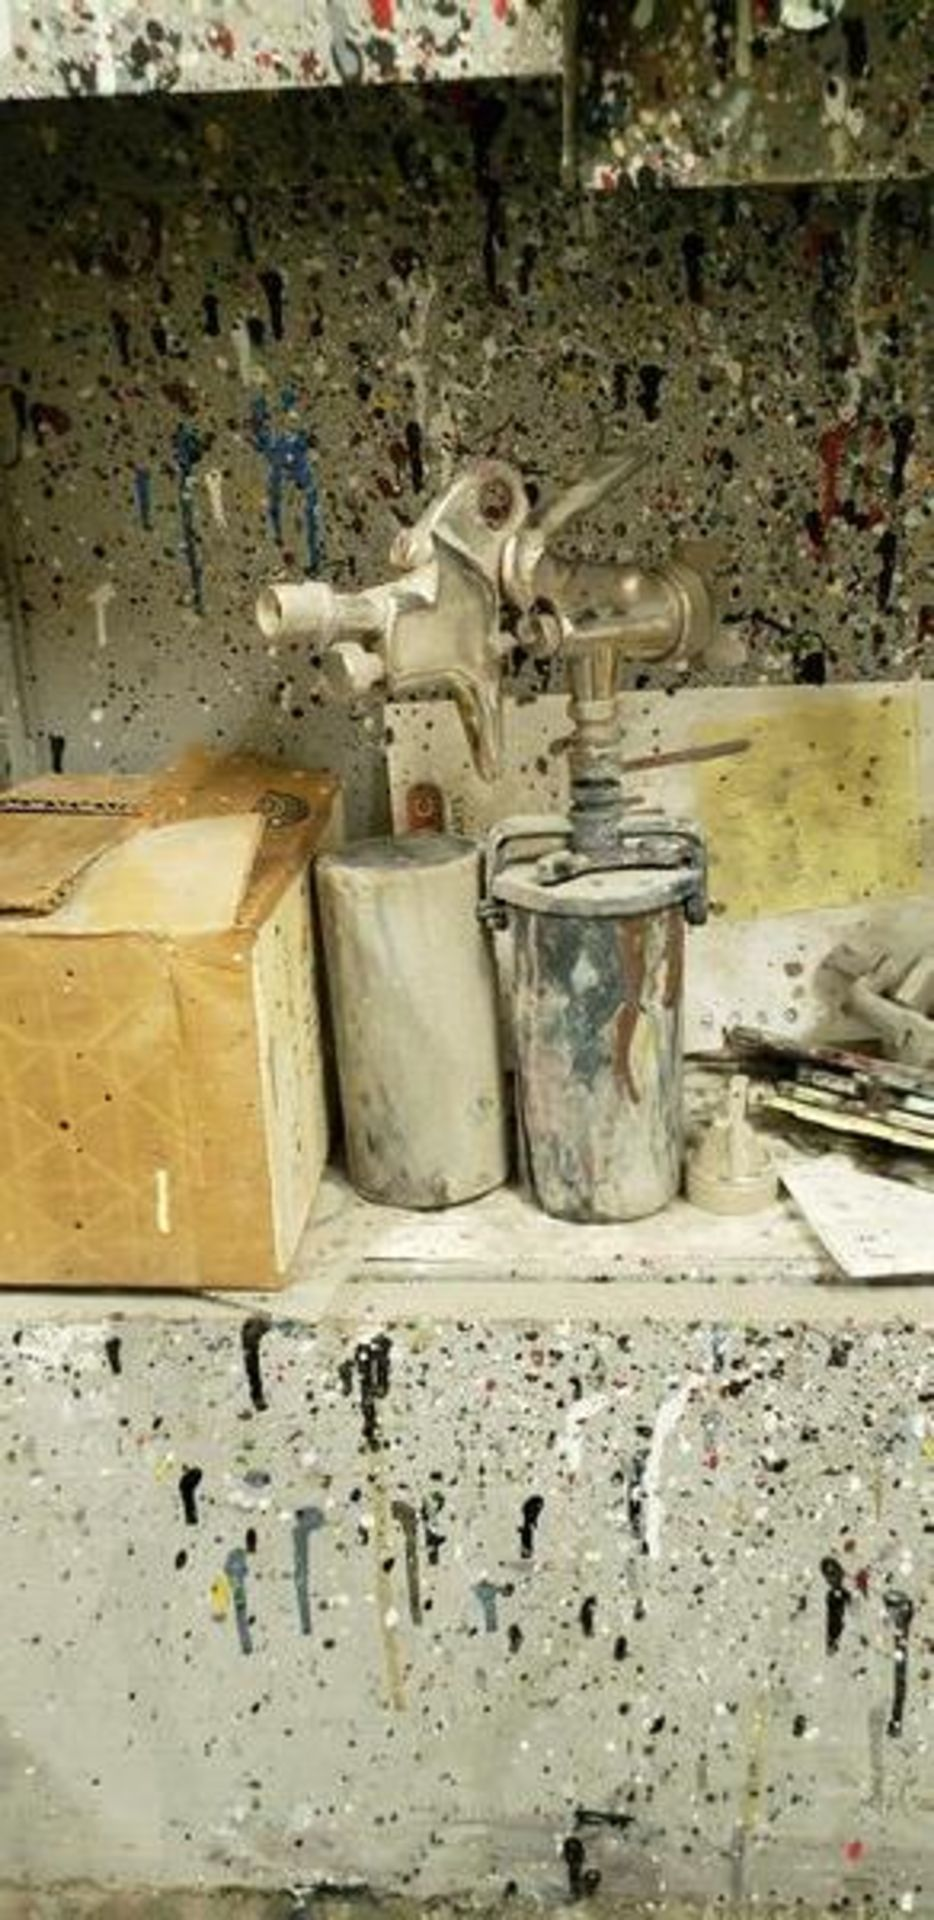 LOT OF PAINTING ITEMS ON LEFT TABLE, TOP AND BACK SHELF (TAGGED SPRAY GUNS AND OTHER TAGGED ITEMS AR - Image 9 of 12